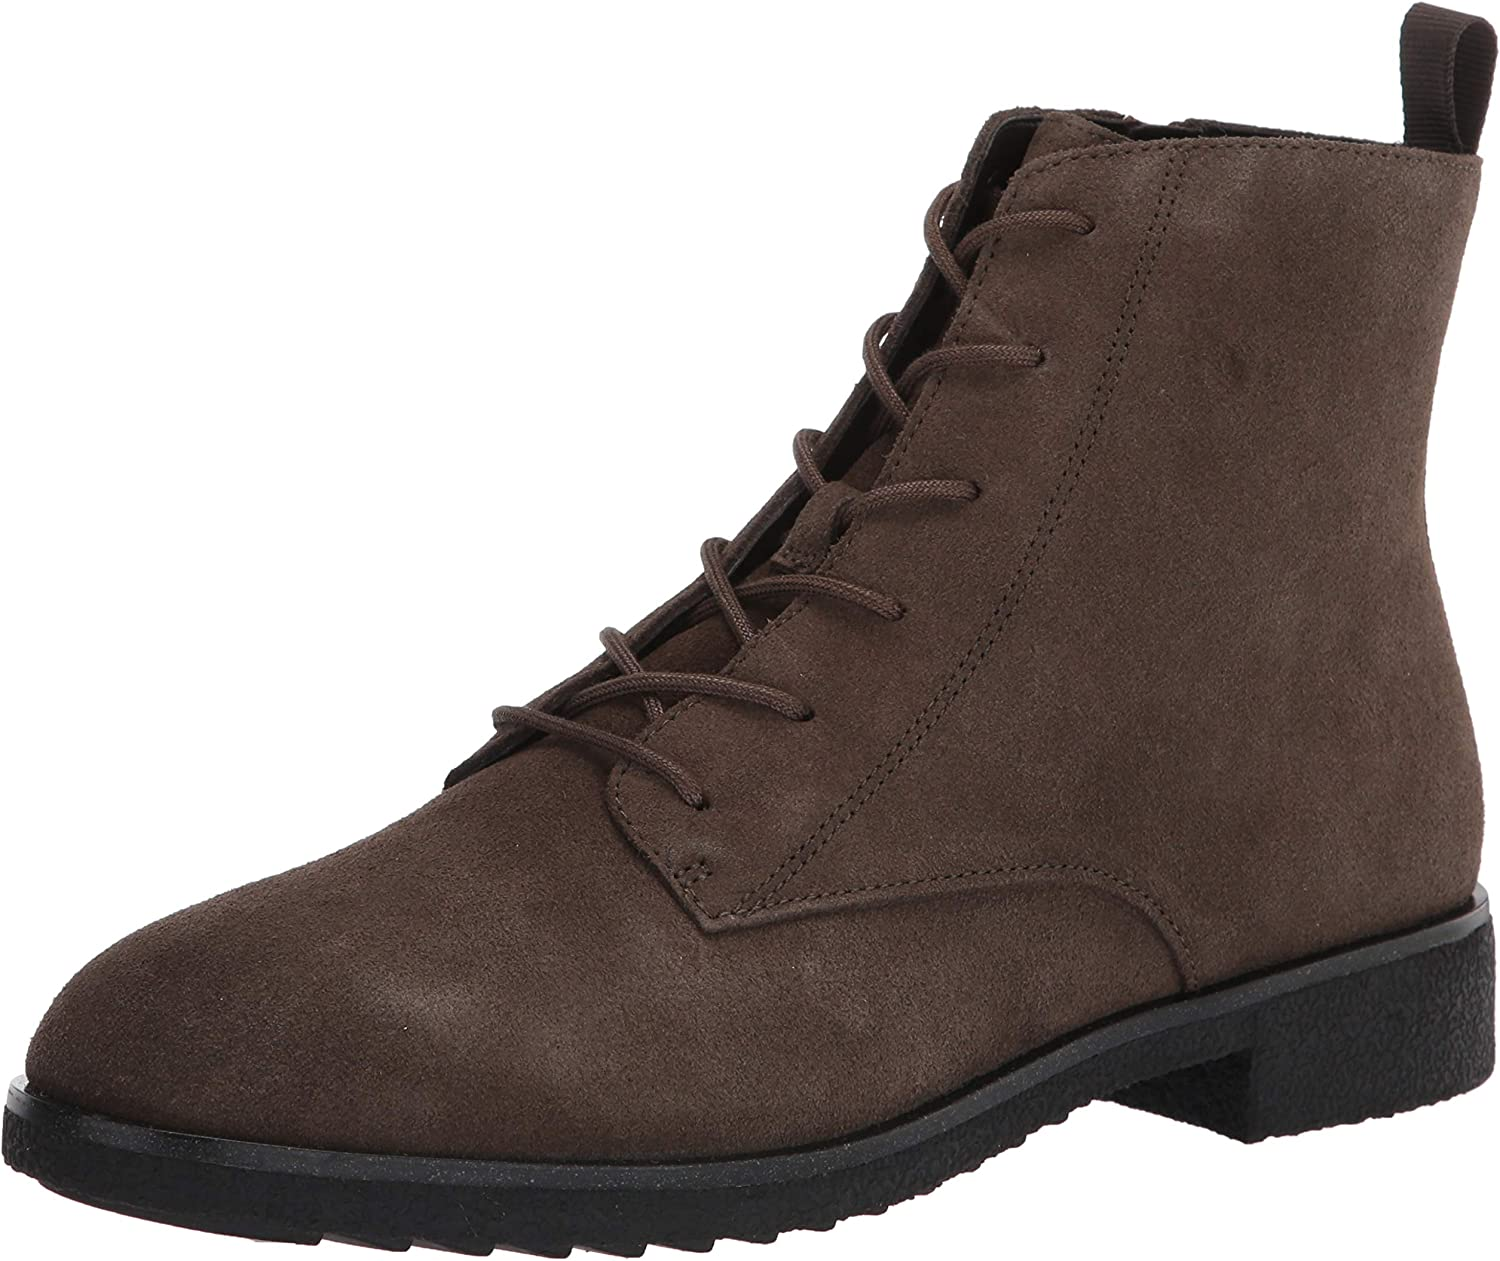 El Paso Mall High quality Clarks Women's Griffin Lace Ankle Boot